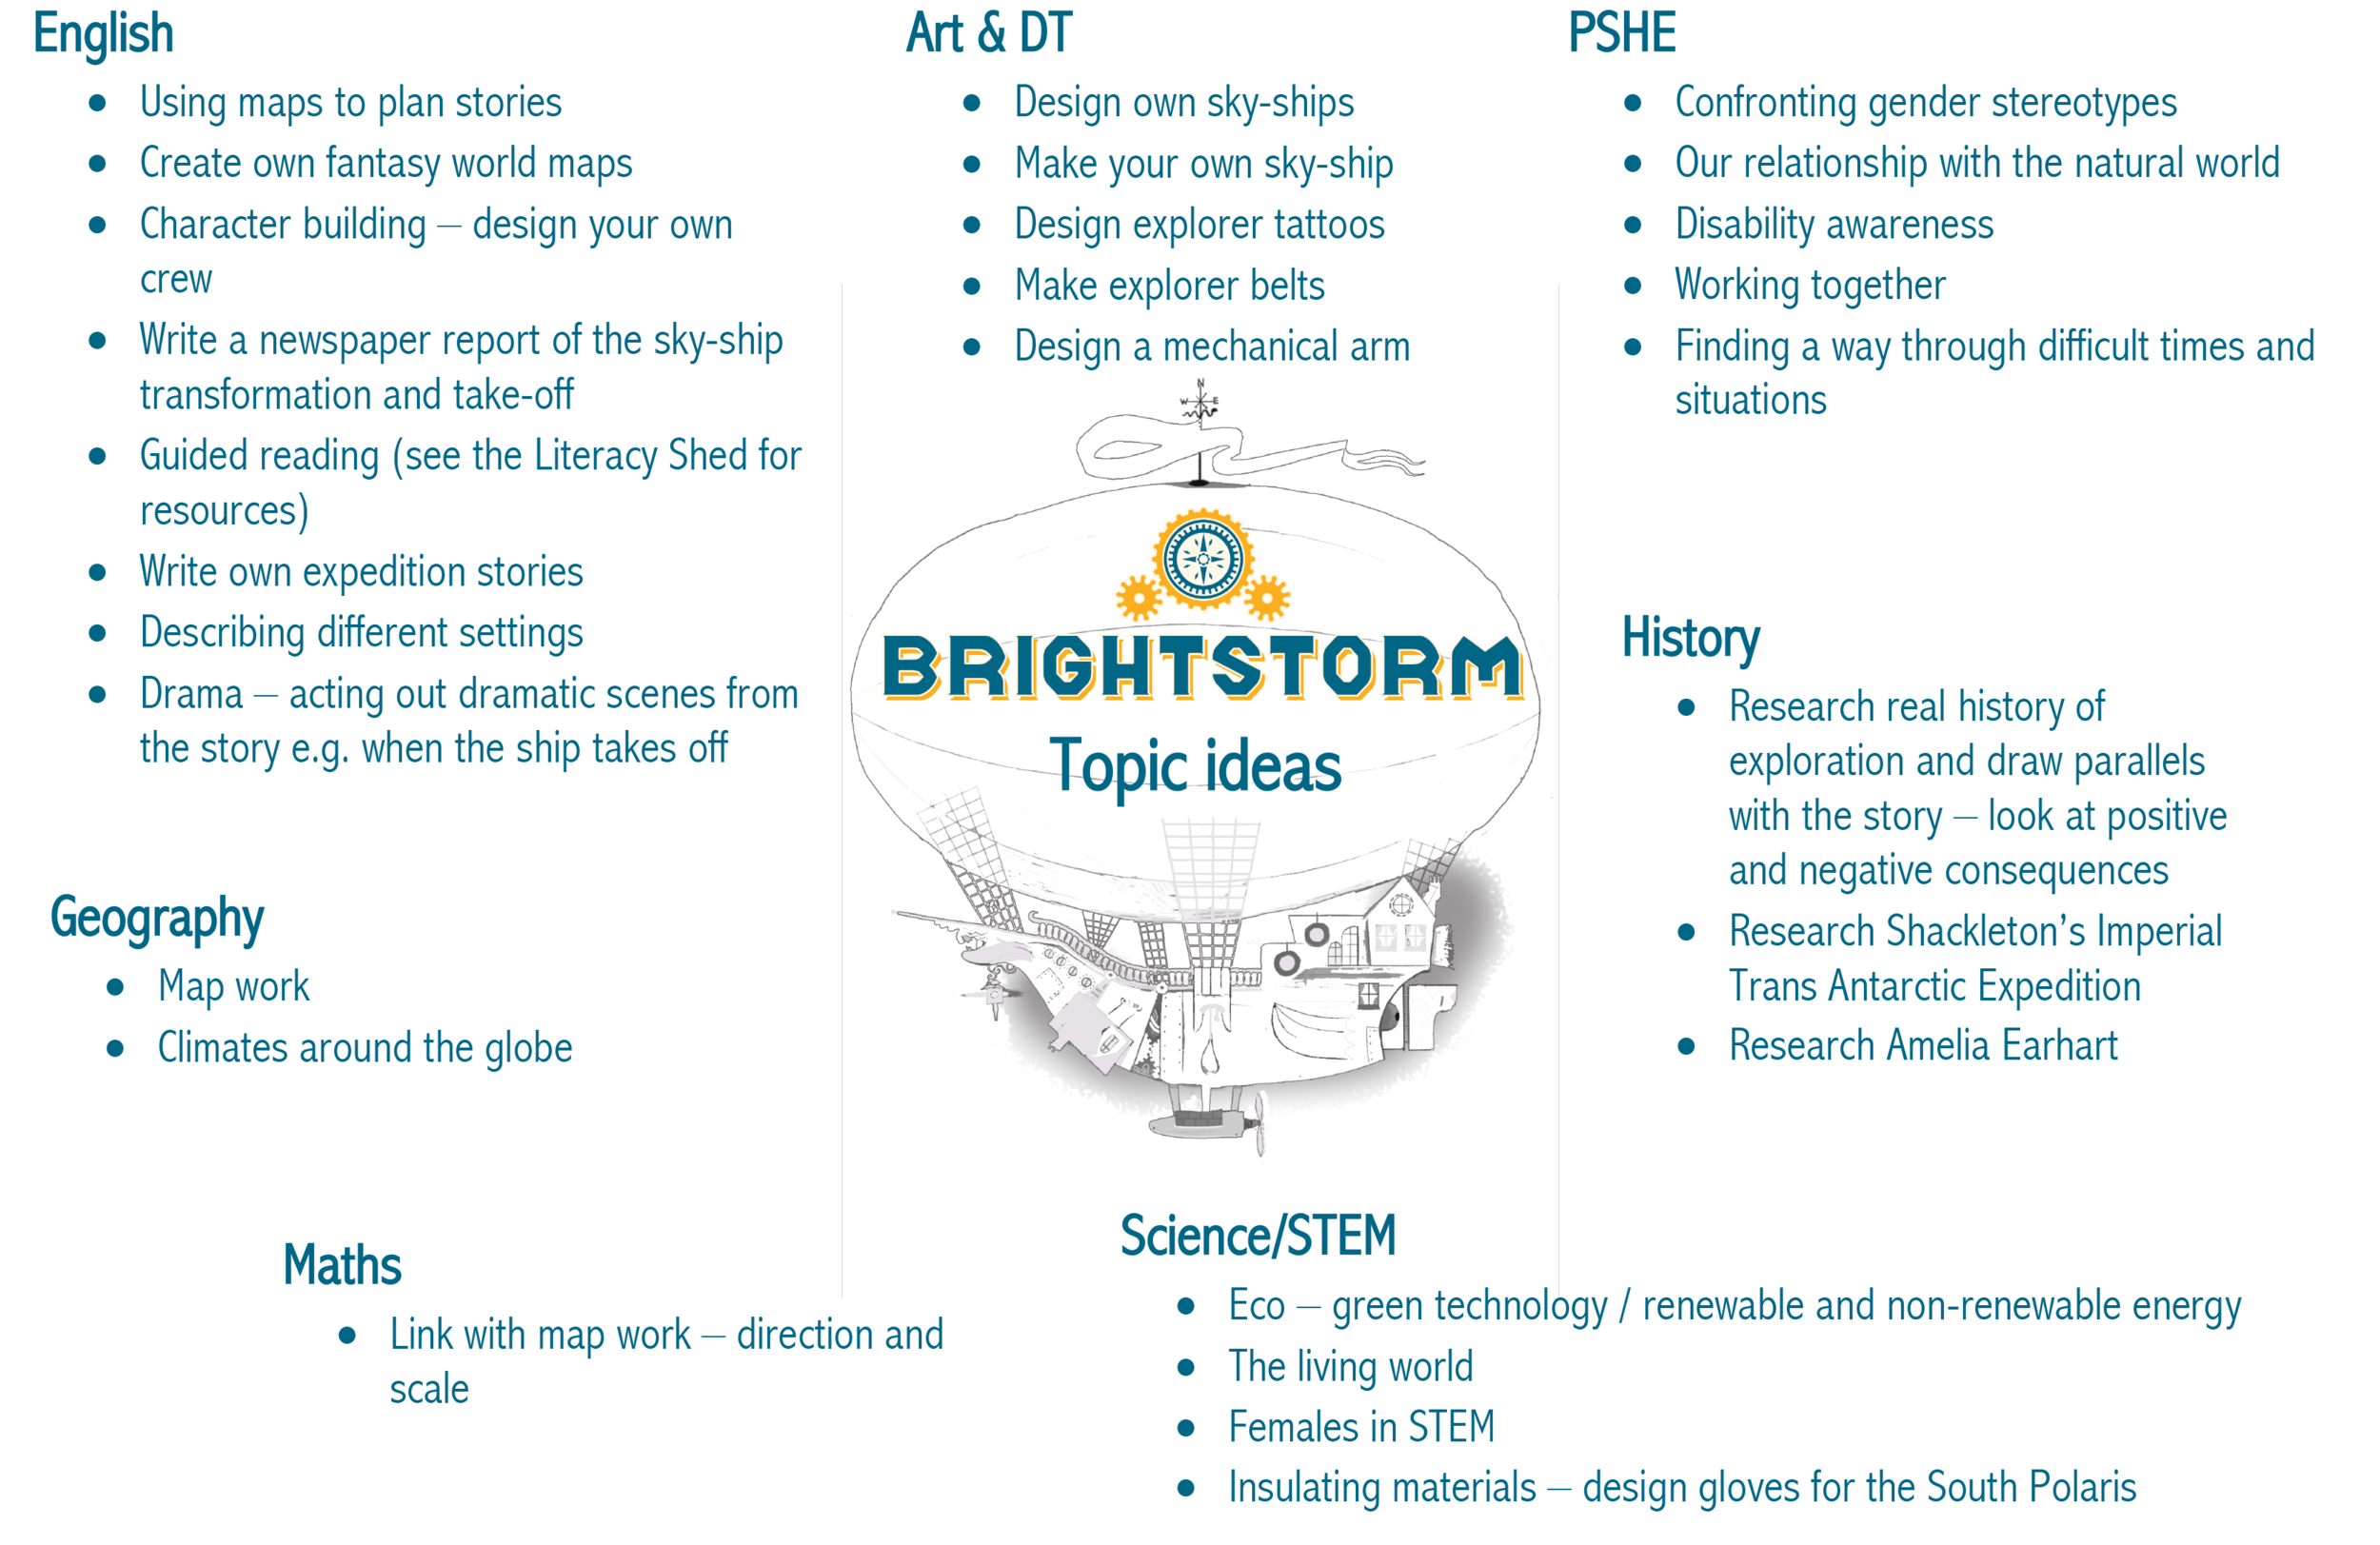 Download topic ideas - Brightstorm has been used by teachers in conjunction with topics such as EXPLORERS and THE FROZEN SOUTH